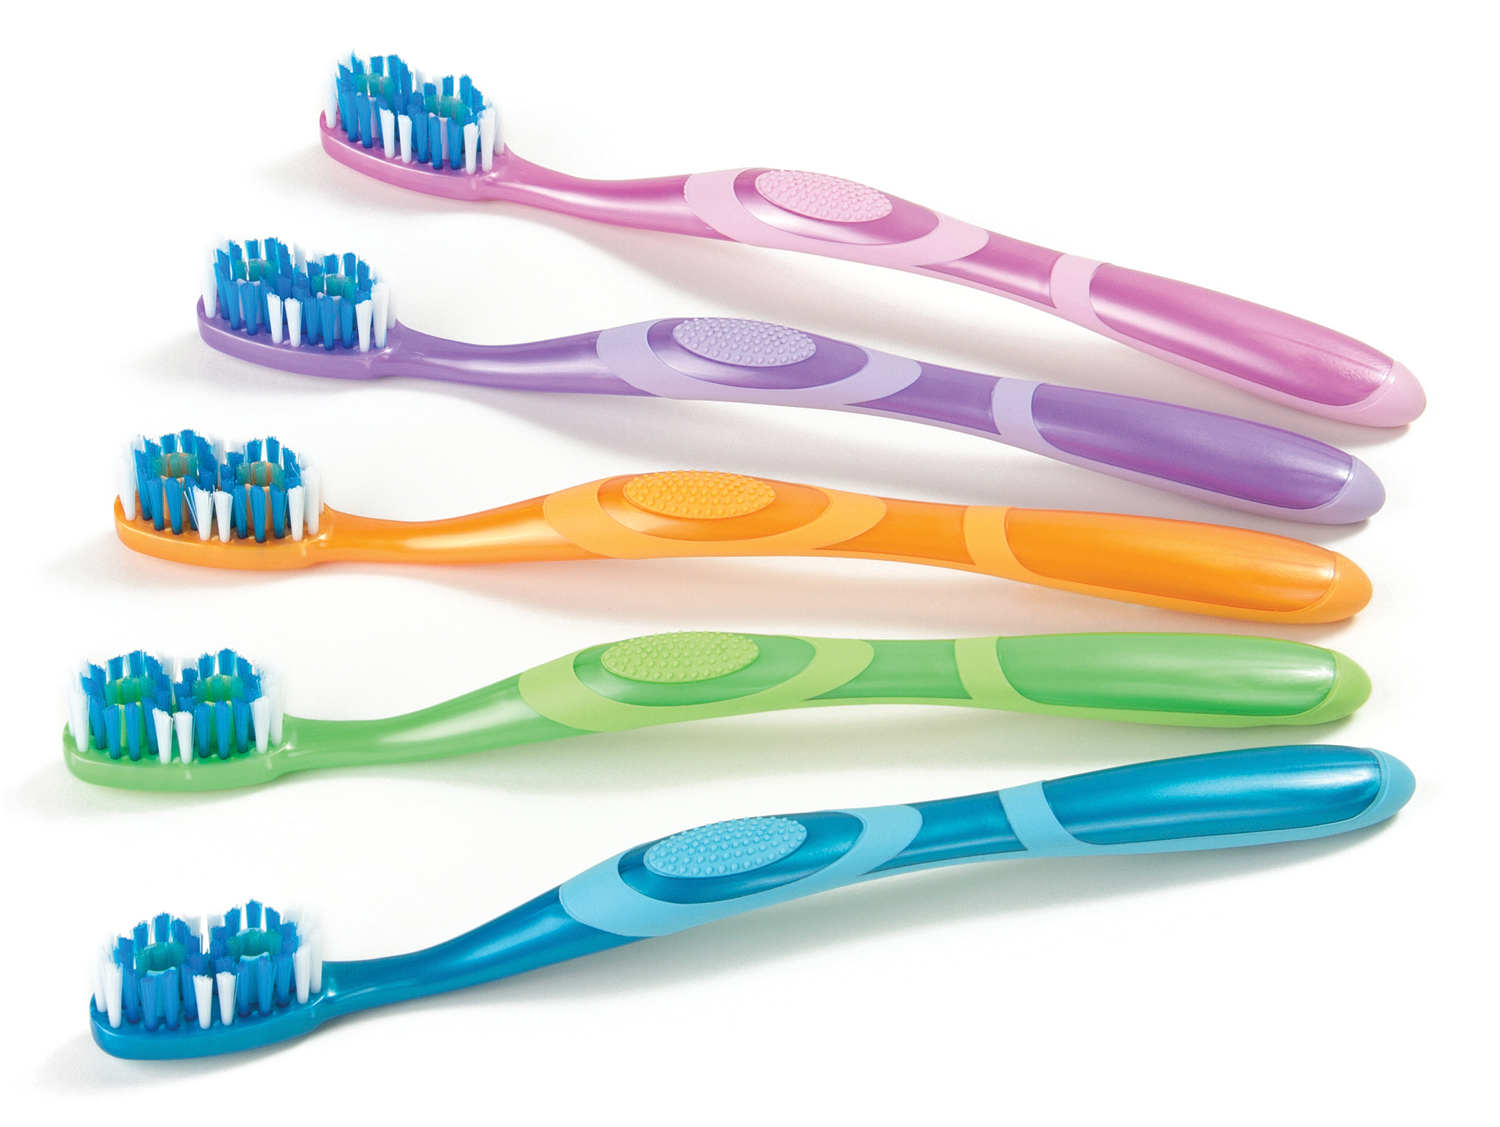 Acclean Edge Toothbrush